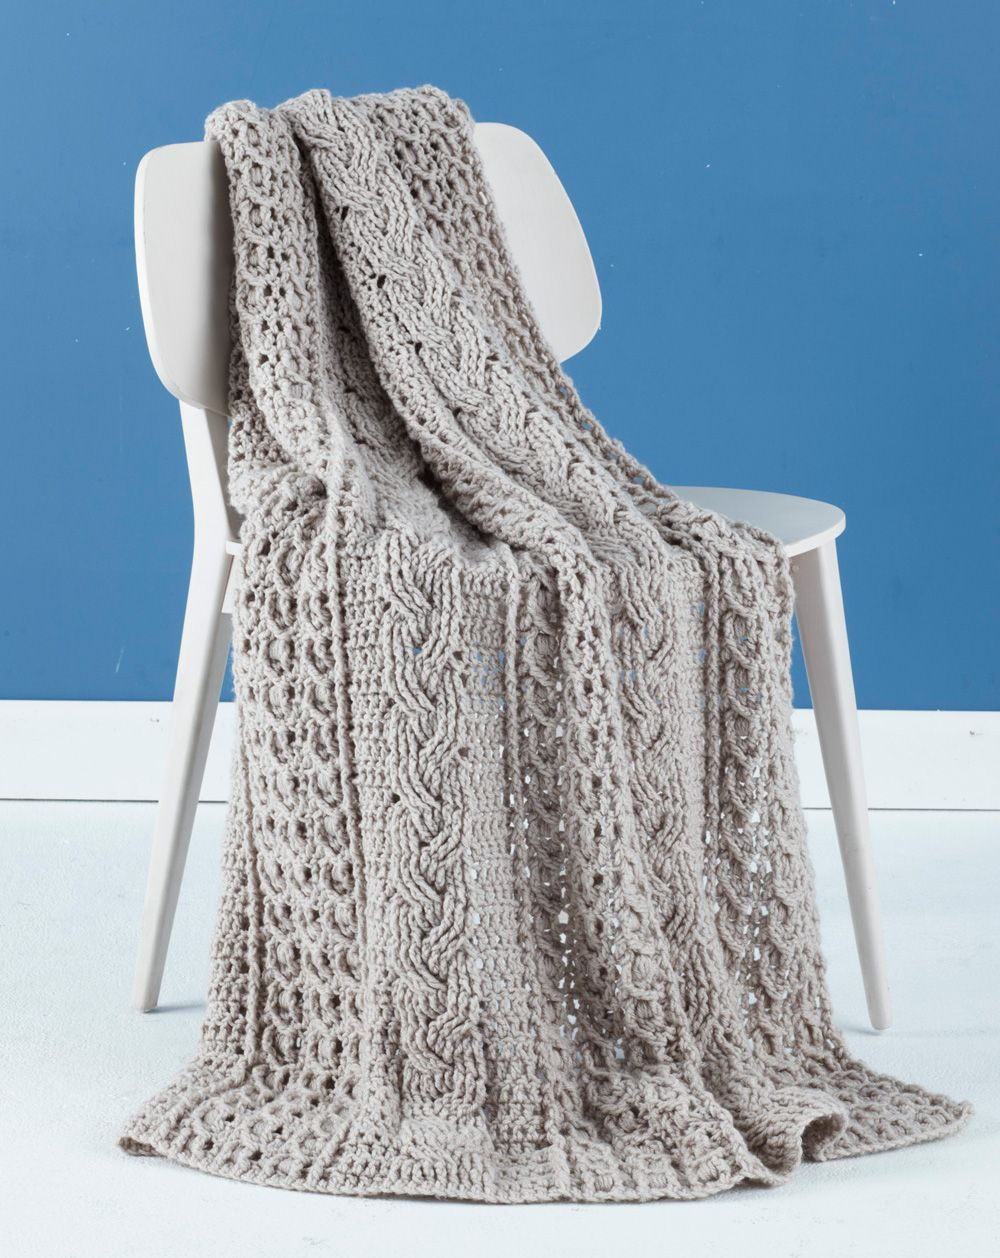 Crocheted Cable Afghan - Crocheted Blanket | Pinterest | Free ...